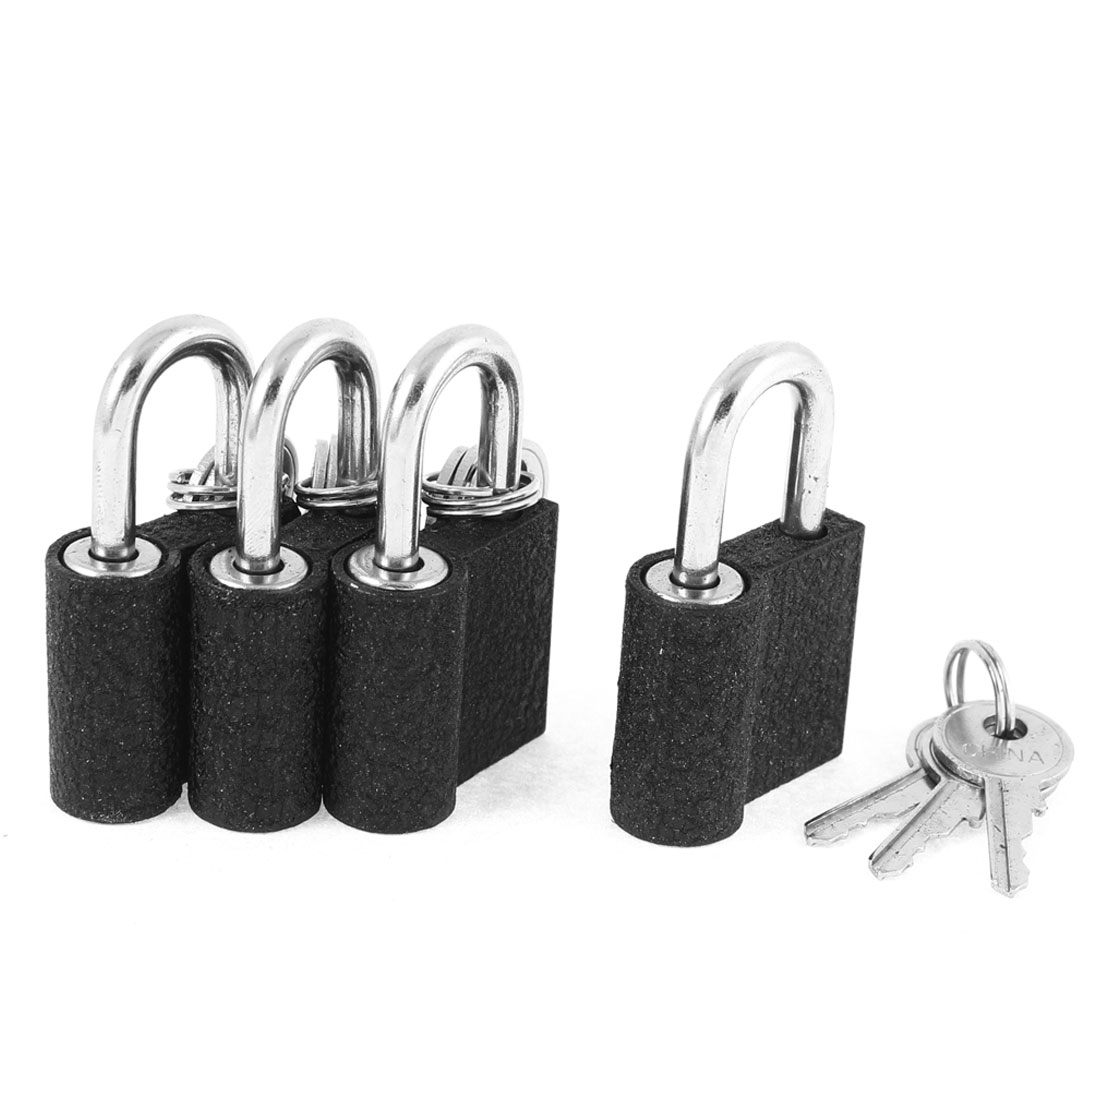 4pcs Metal Security Lock Drawer Gate Door Small Padlock with key 5cm x 2.8cm